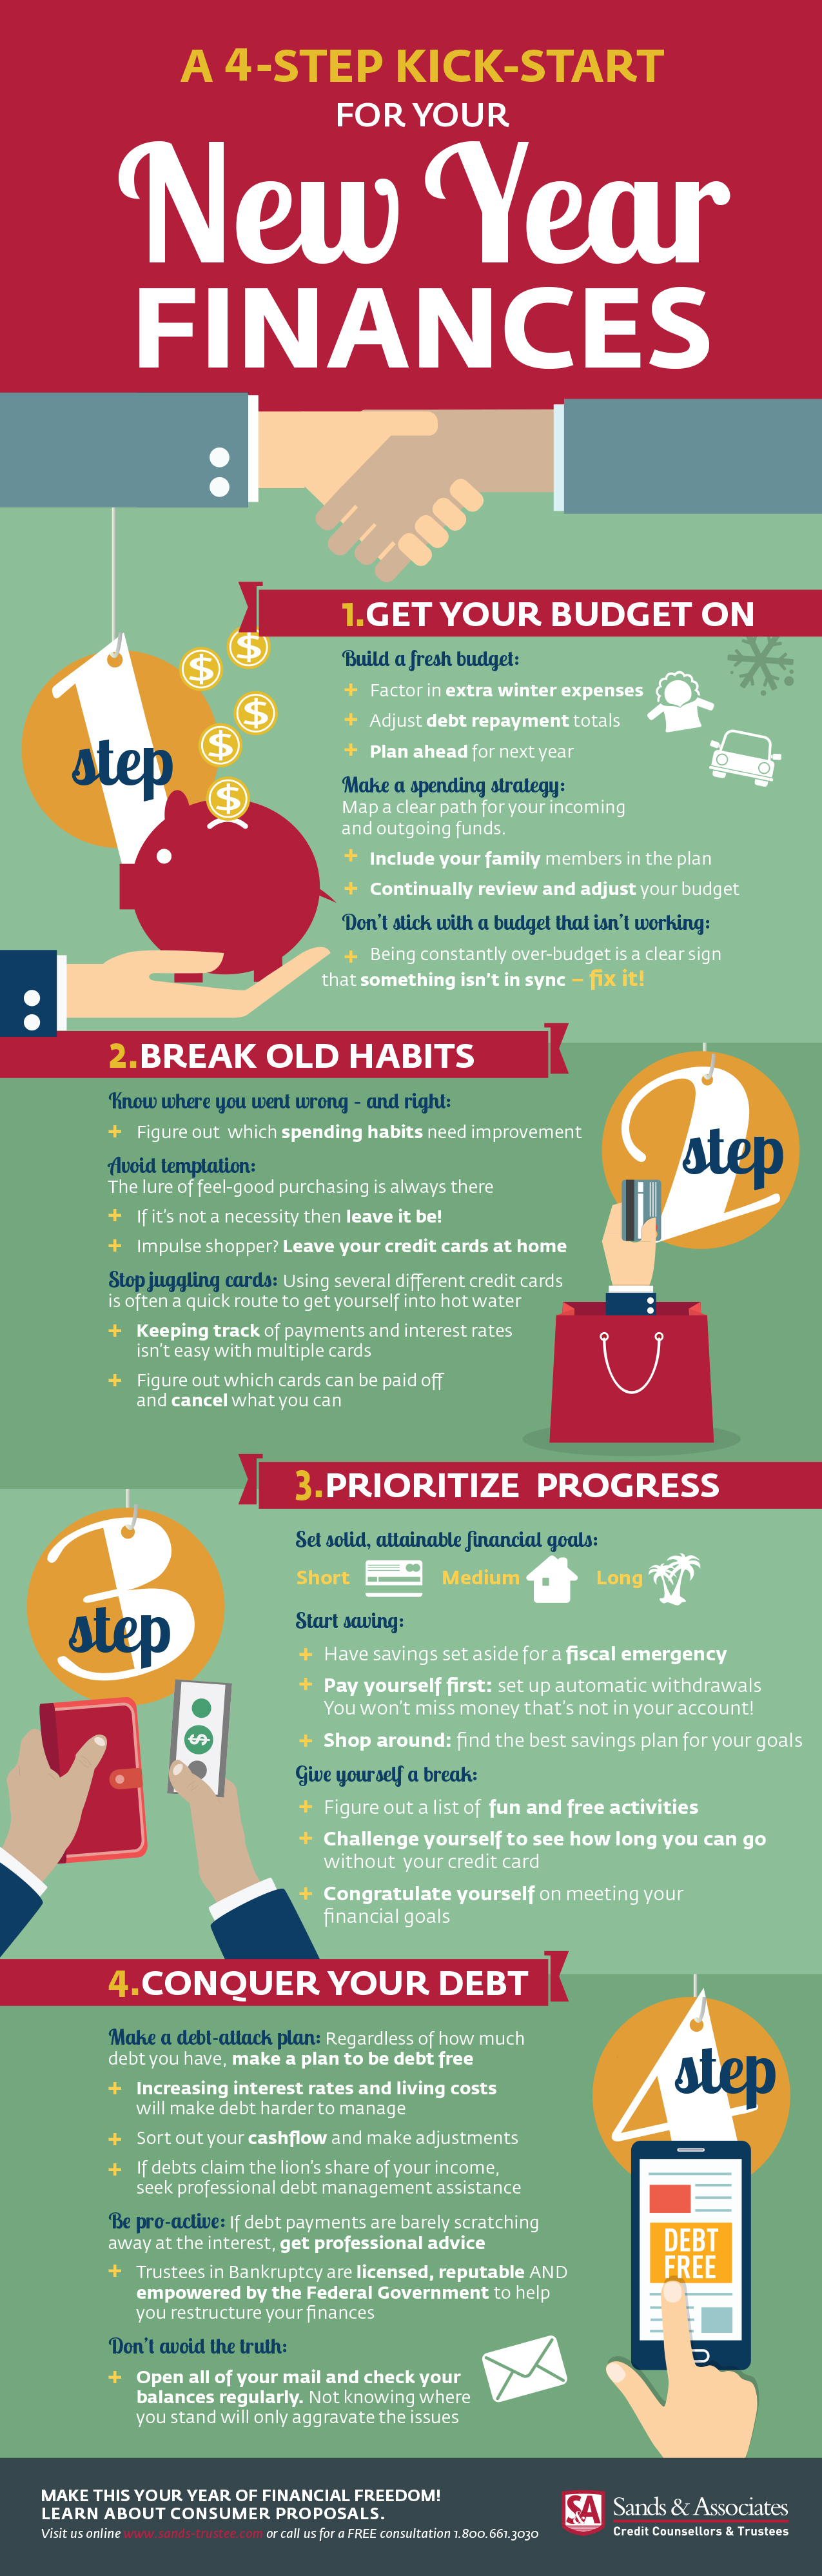 4-Step Kick-Start for your New Year Finances Infographic